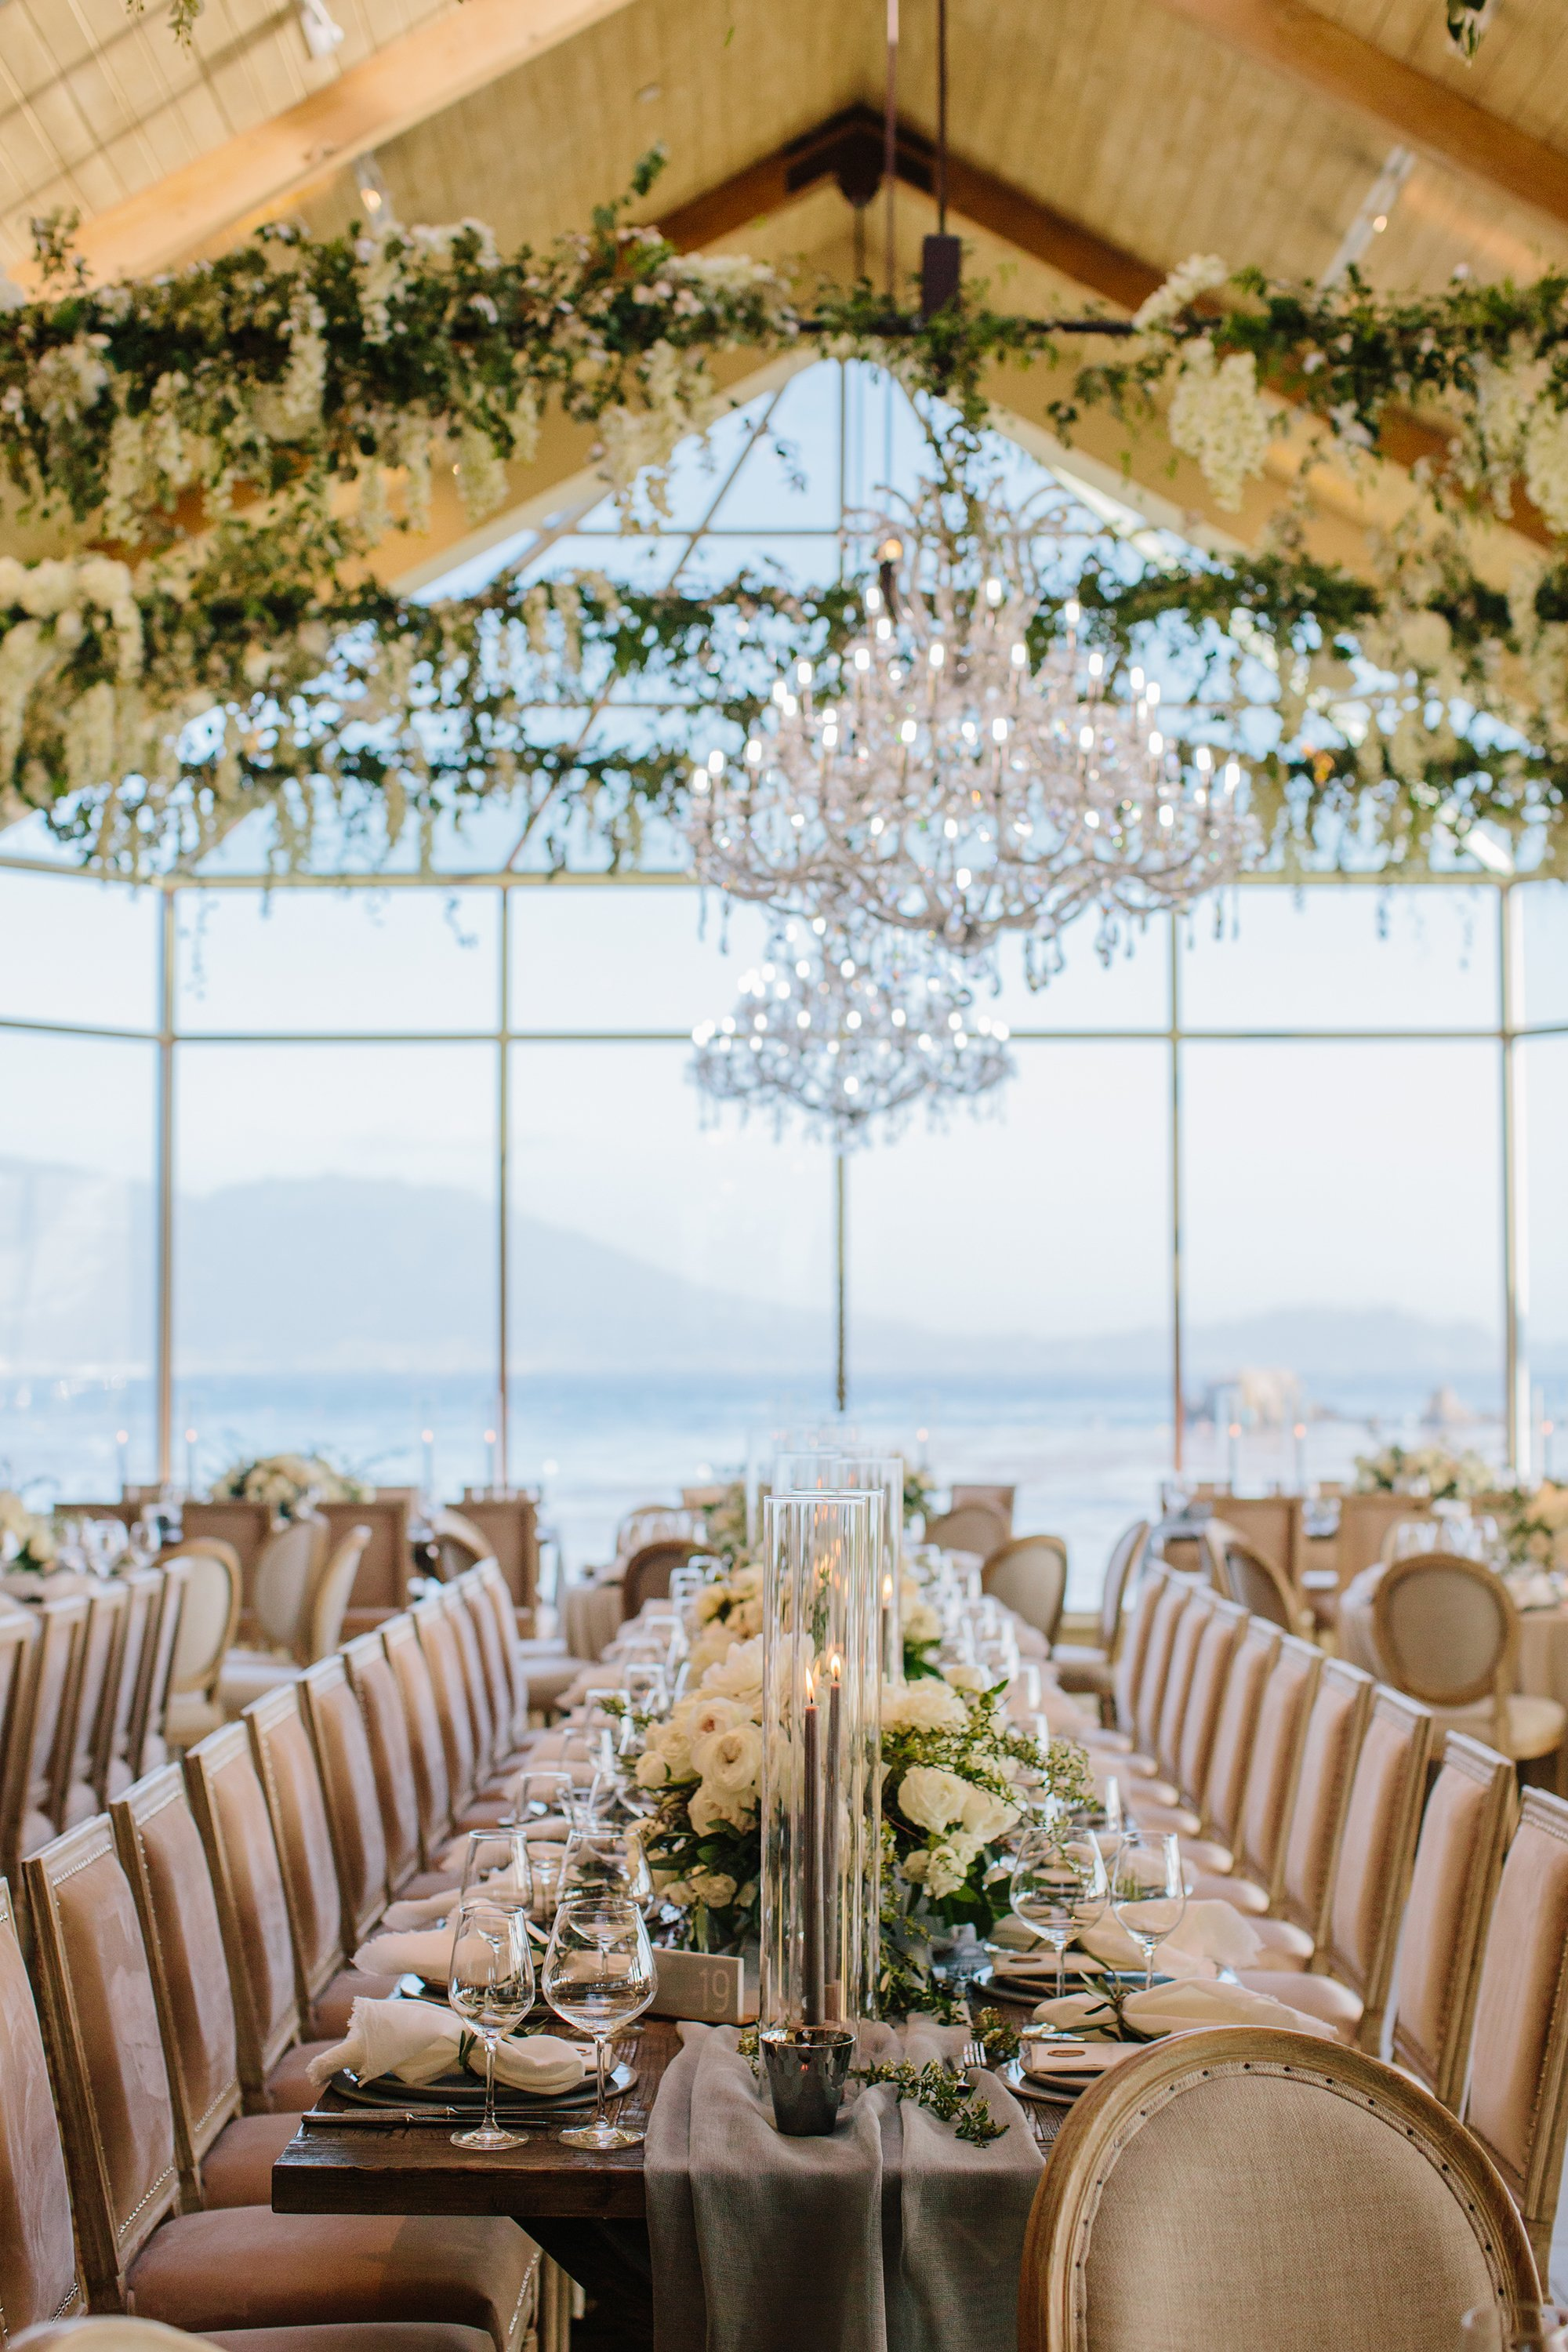 Floral And Event Design Is A Full Service Design Production Division Within Pebble  Beach Company. Working Closely With Each Client, We Provide Creative ...